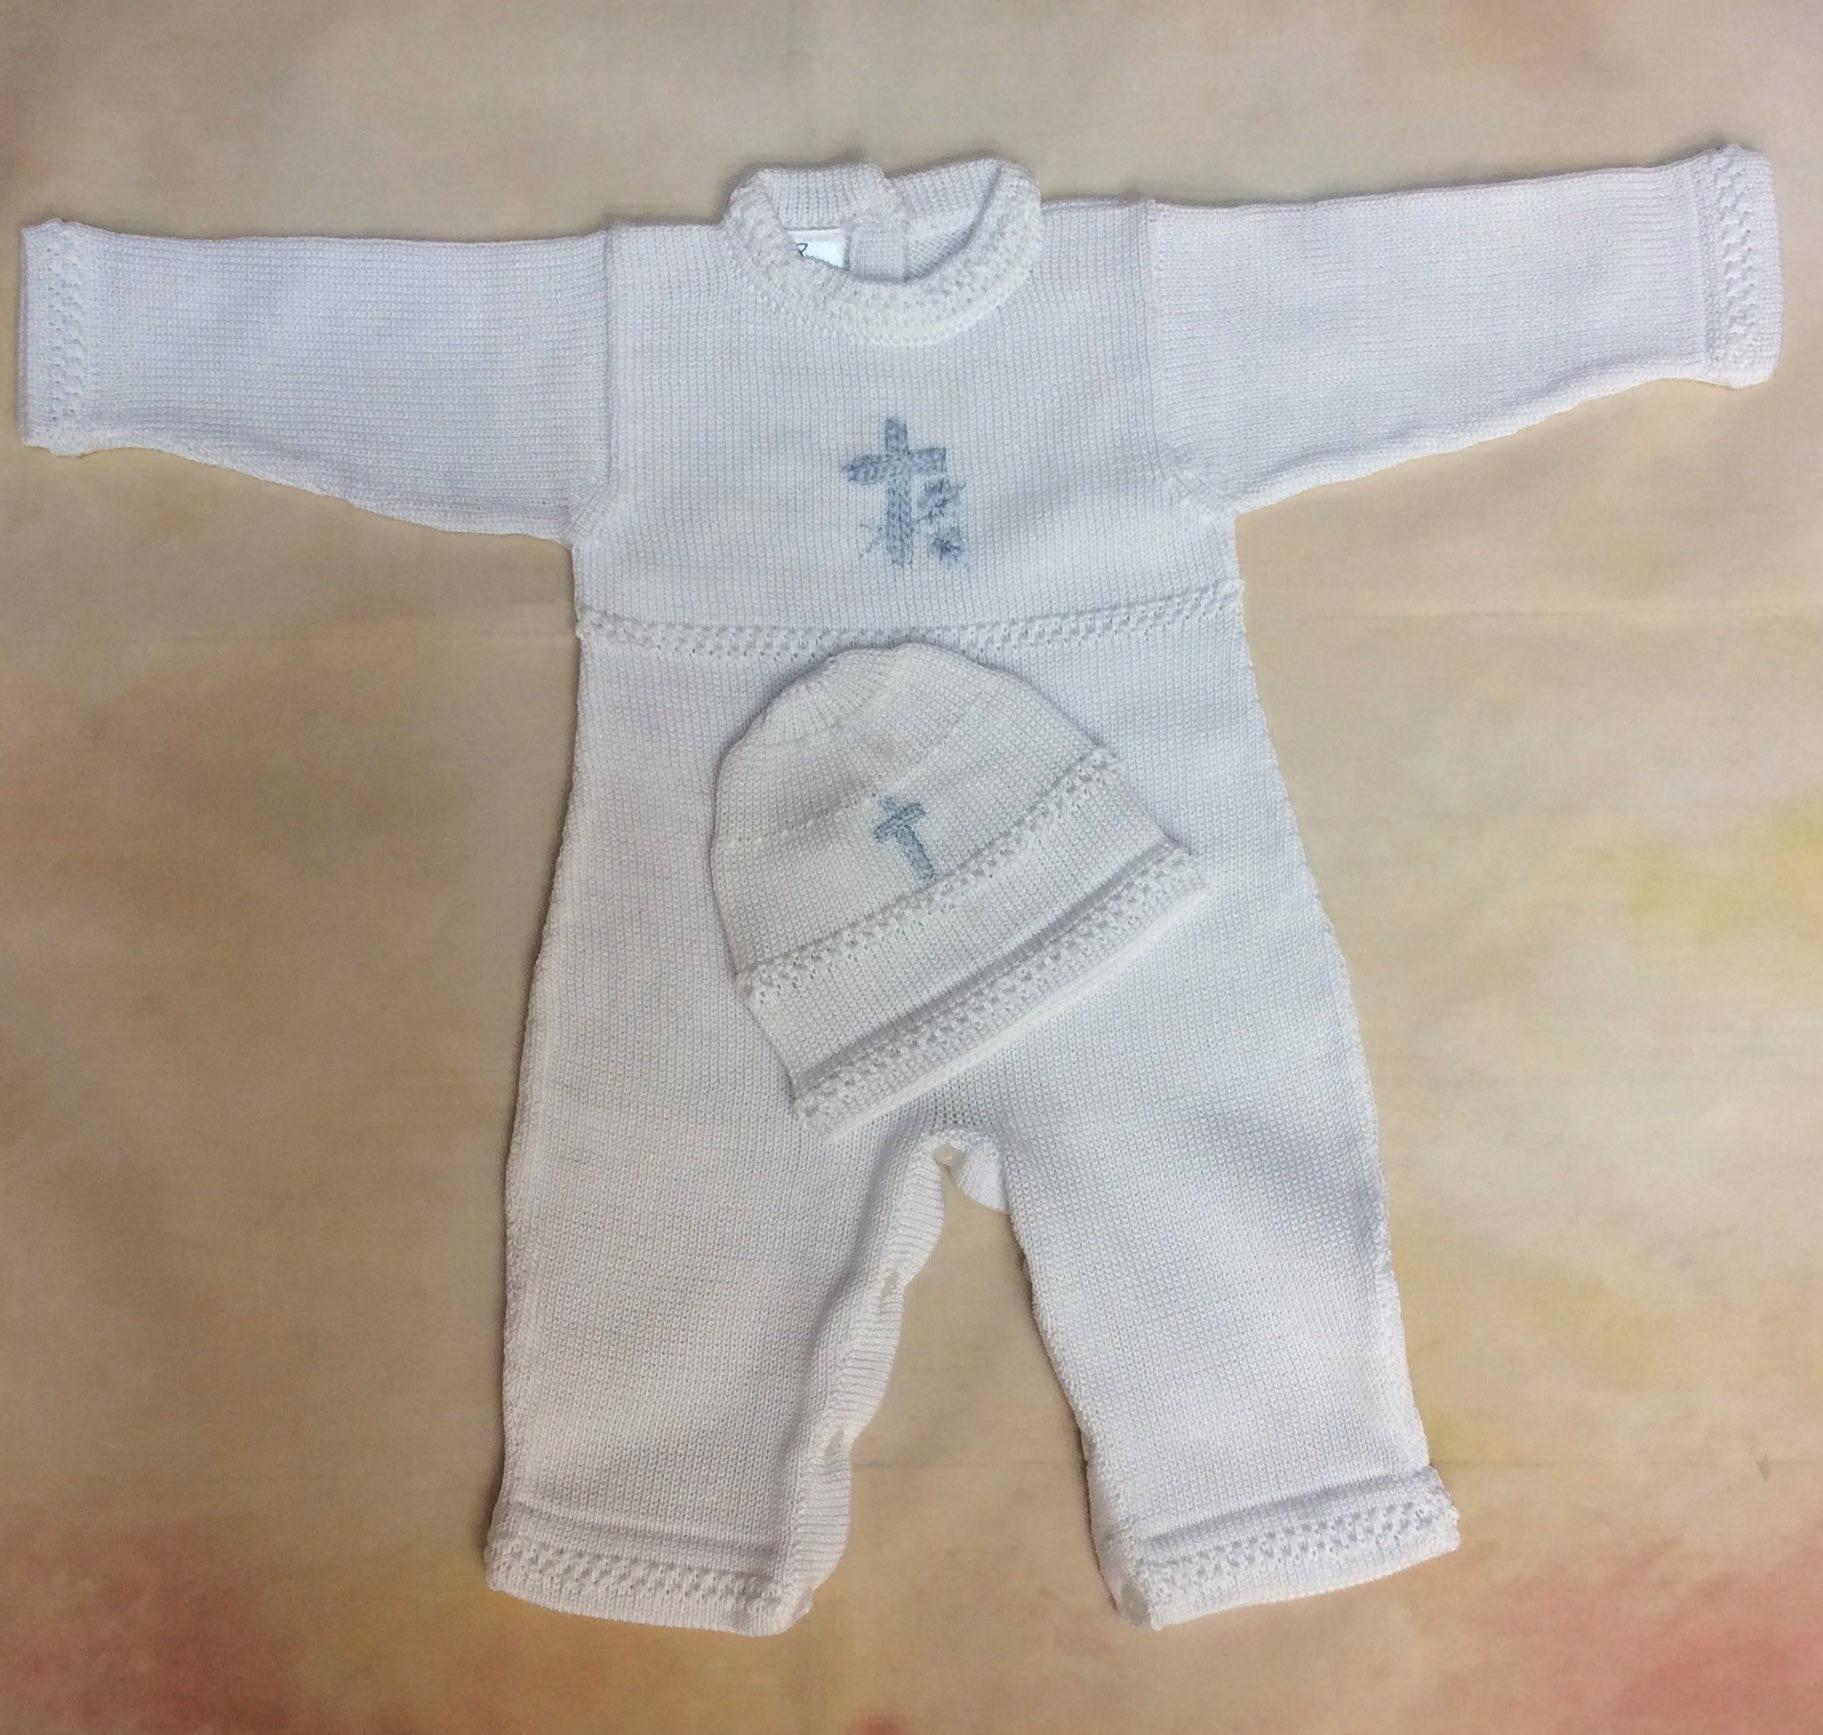 ATKSP90WB Boys Christening Knit outfit w/blue Cross long sleeve/long pant